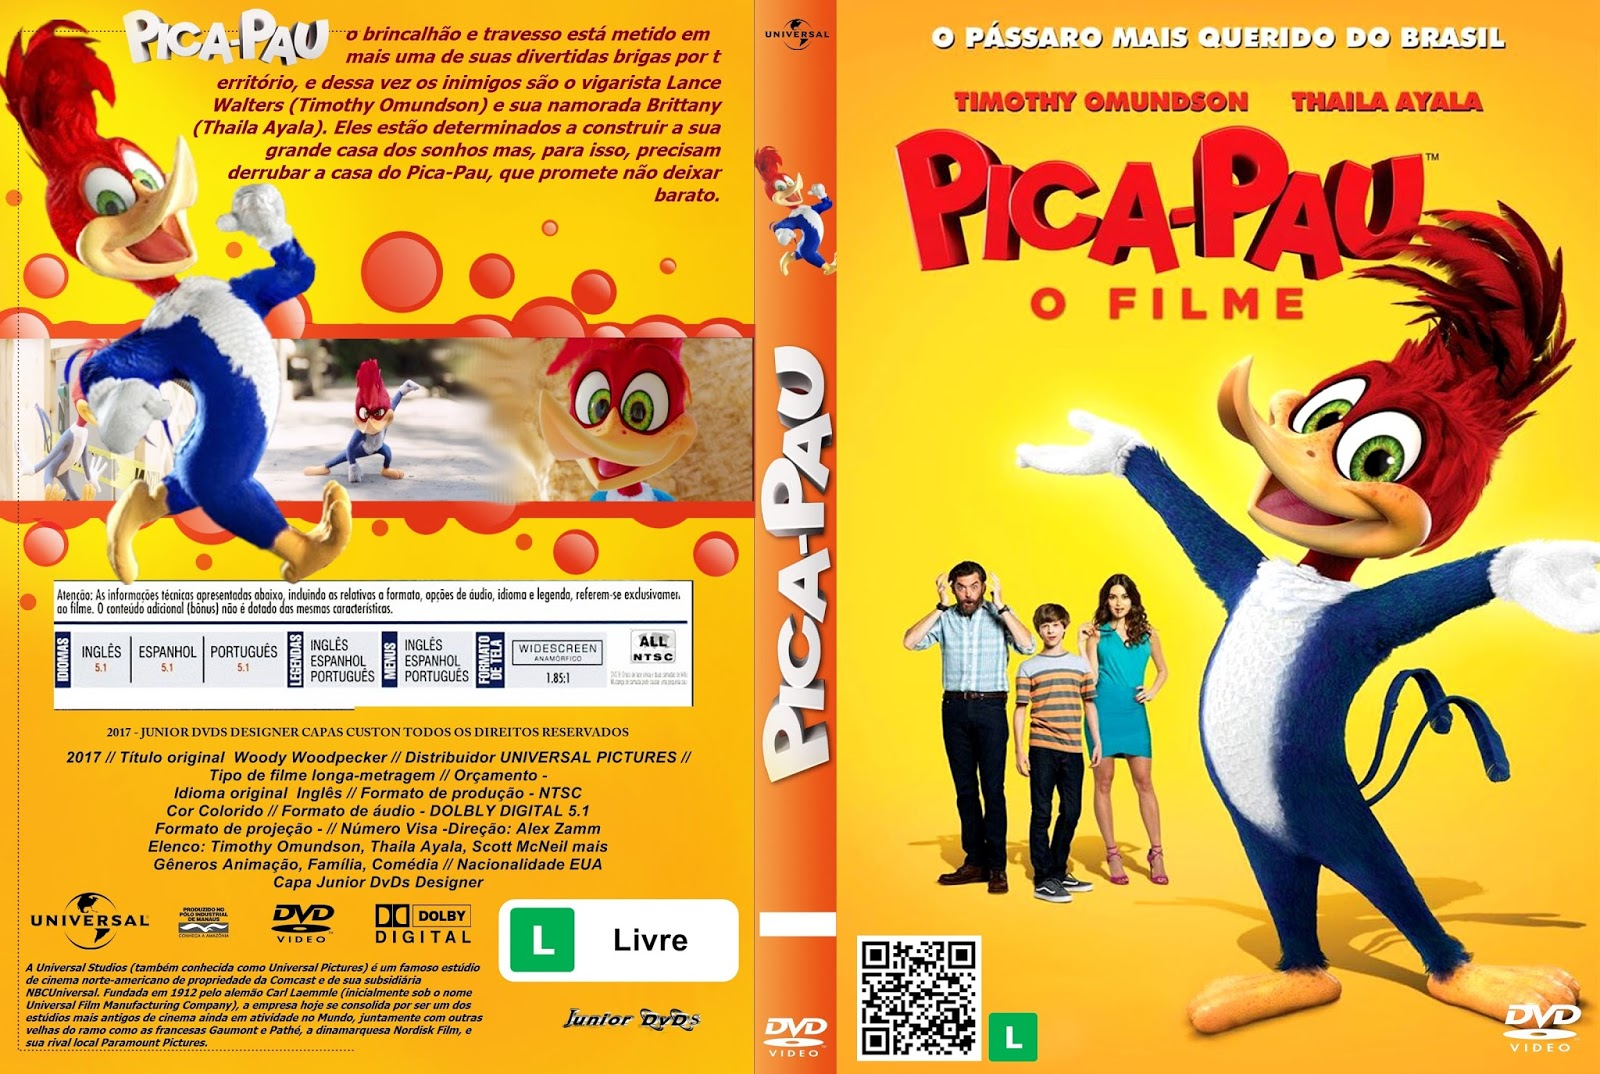 Junior dvds capa do filme pica pau o filme capa 2 for O jardineiro fiel capa